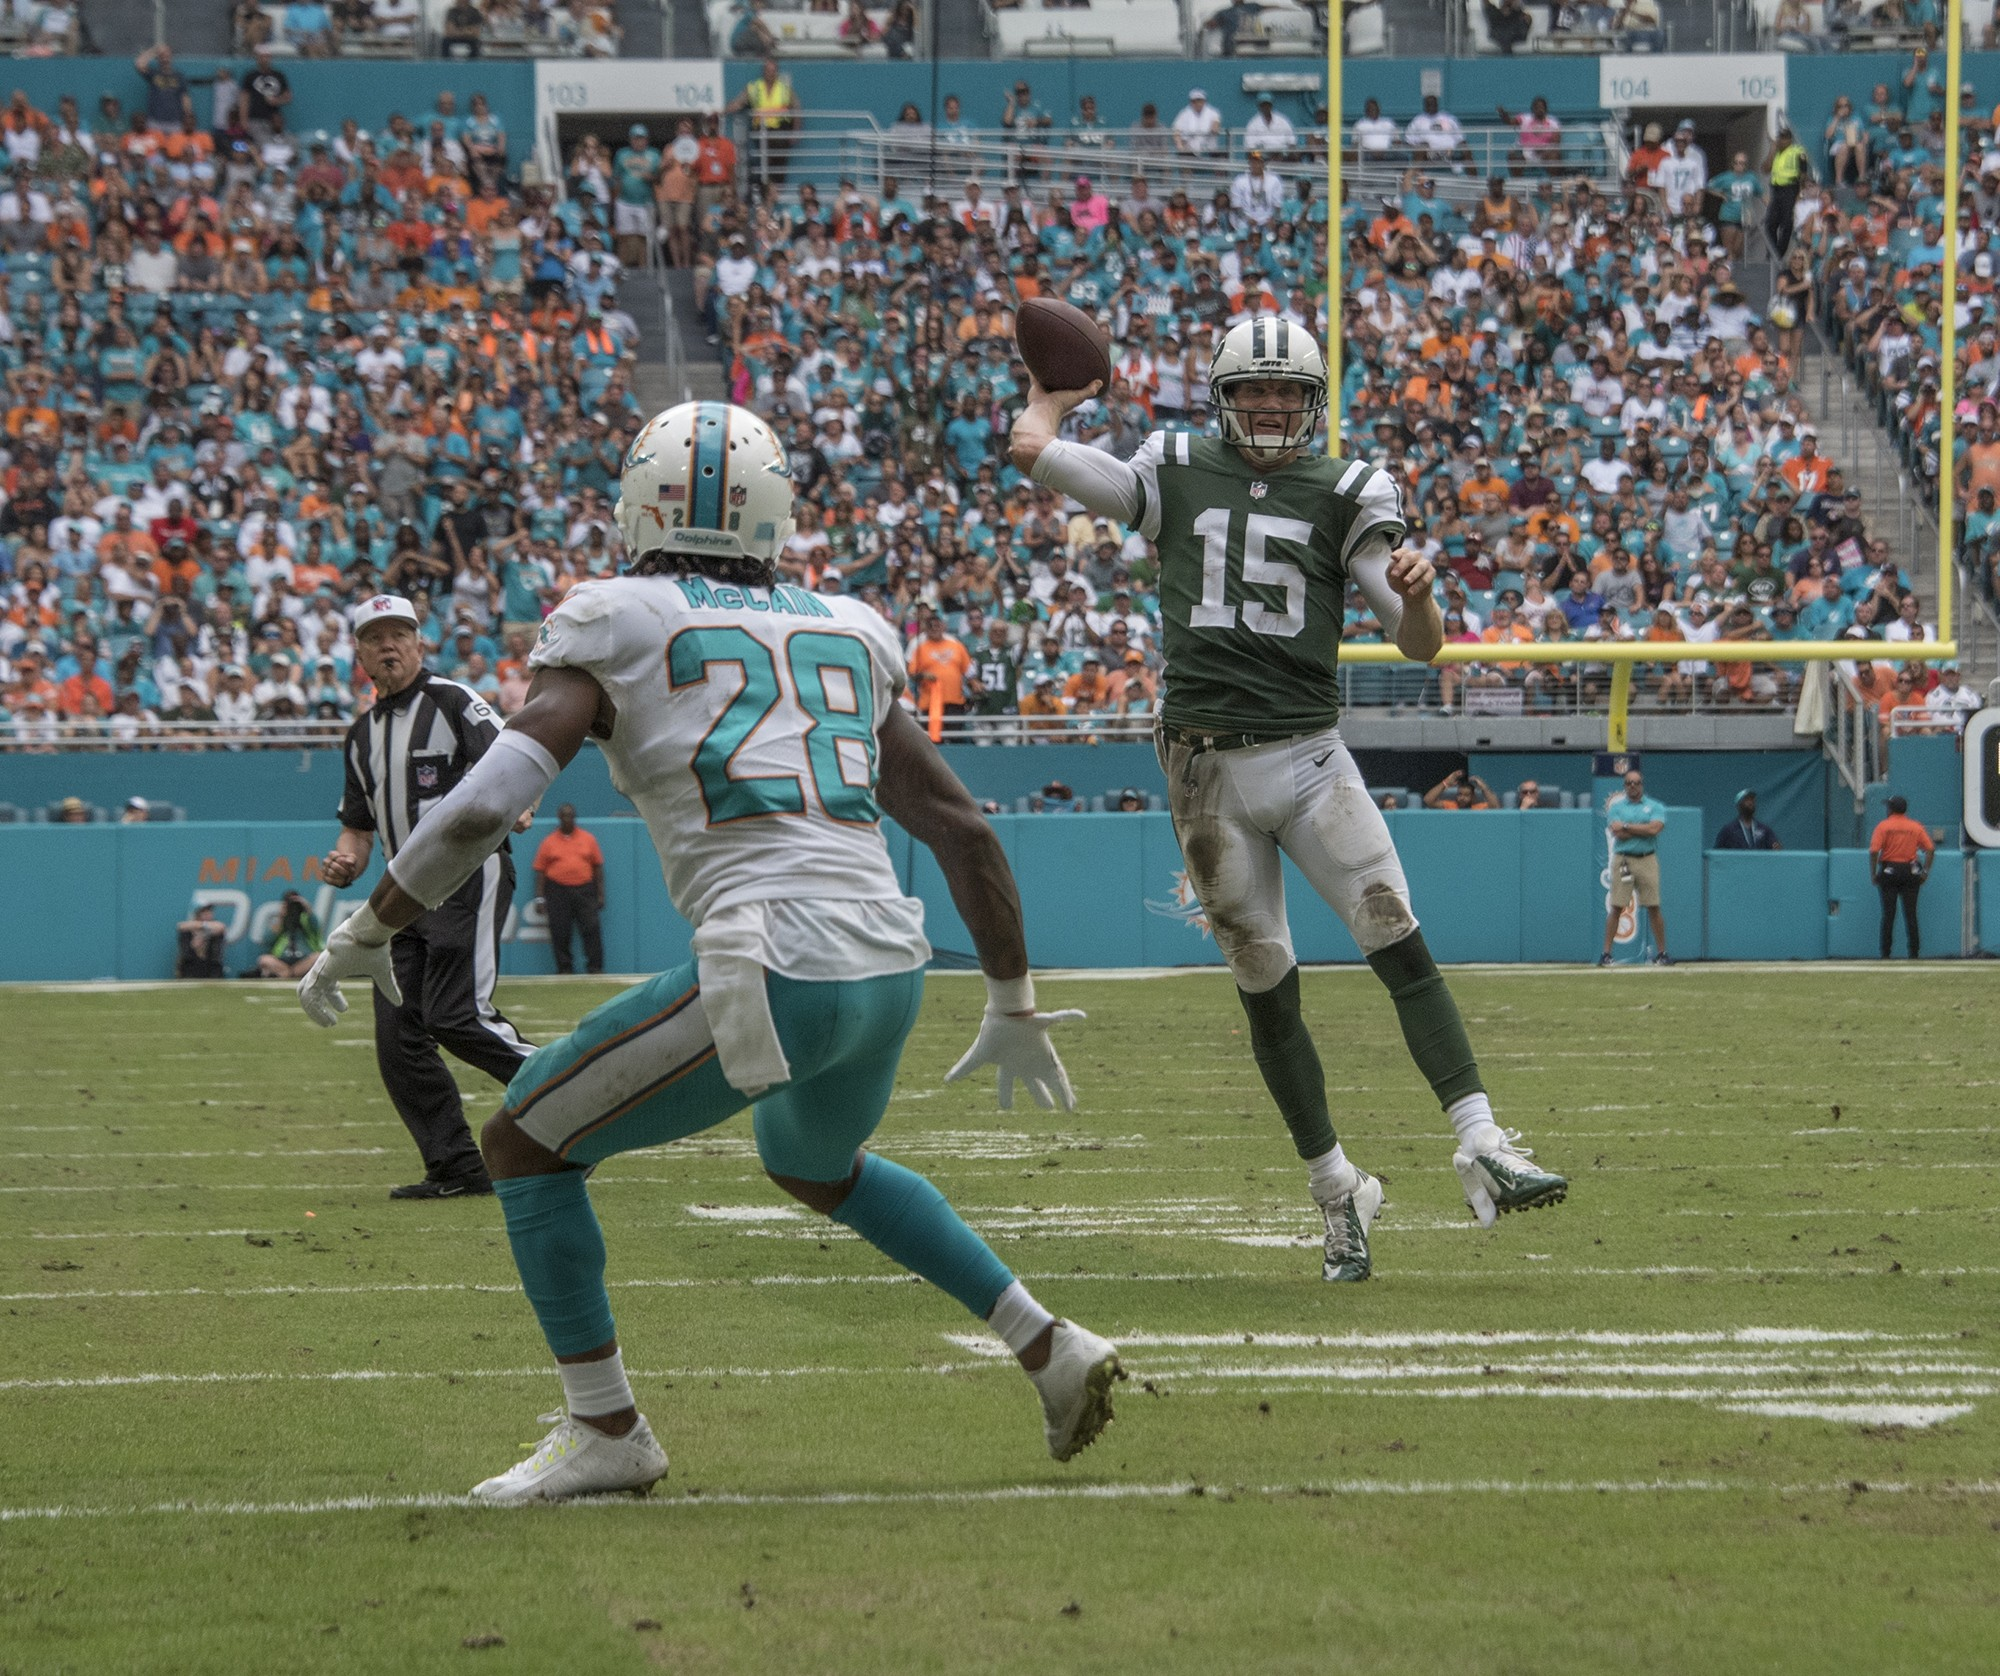 New York Jets quarterback Josh McCown (15) releases a pass for a touchdown to New York Jets tight end Austin Seferian-Jenkins (88) as Miami Dolphins cornerback Bobby McCain (28) defends during 2nd half play of an NFL football game on Sunday, Oct. 22, 2017, in Miami Gardens, Fla. The Miami Dolphins went on to defeat the New York Jets 28-31.(Donald Edgar/El Latino Digital)